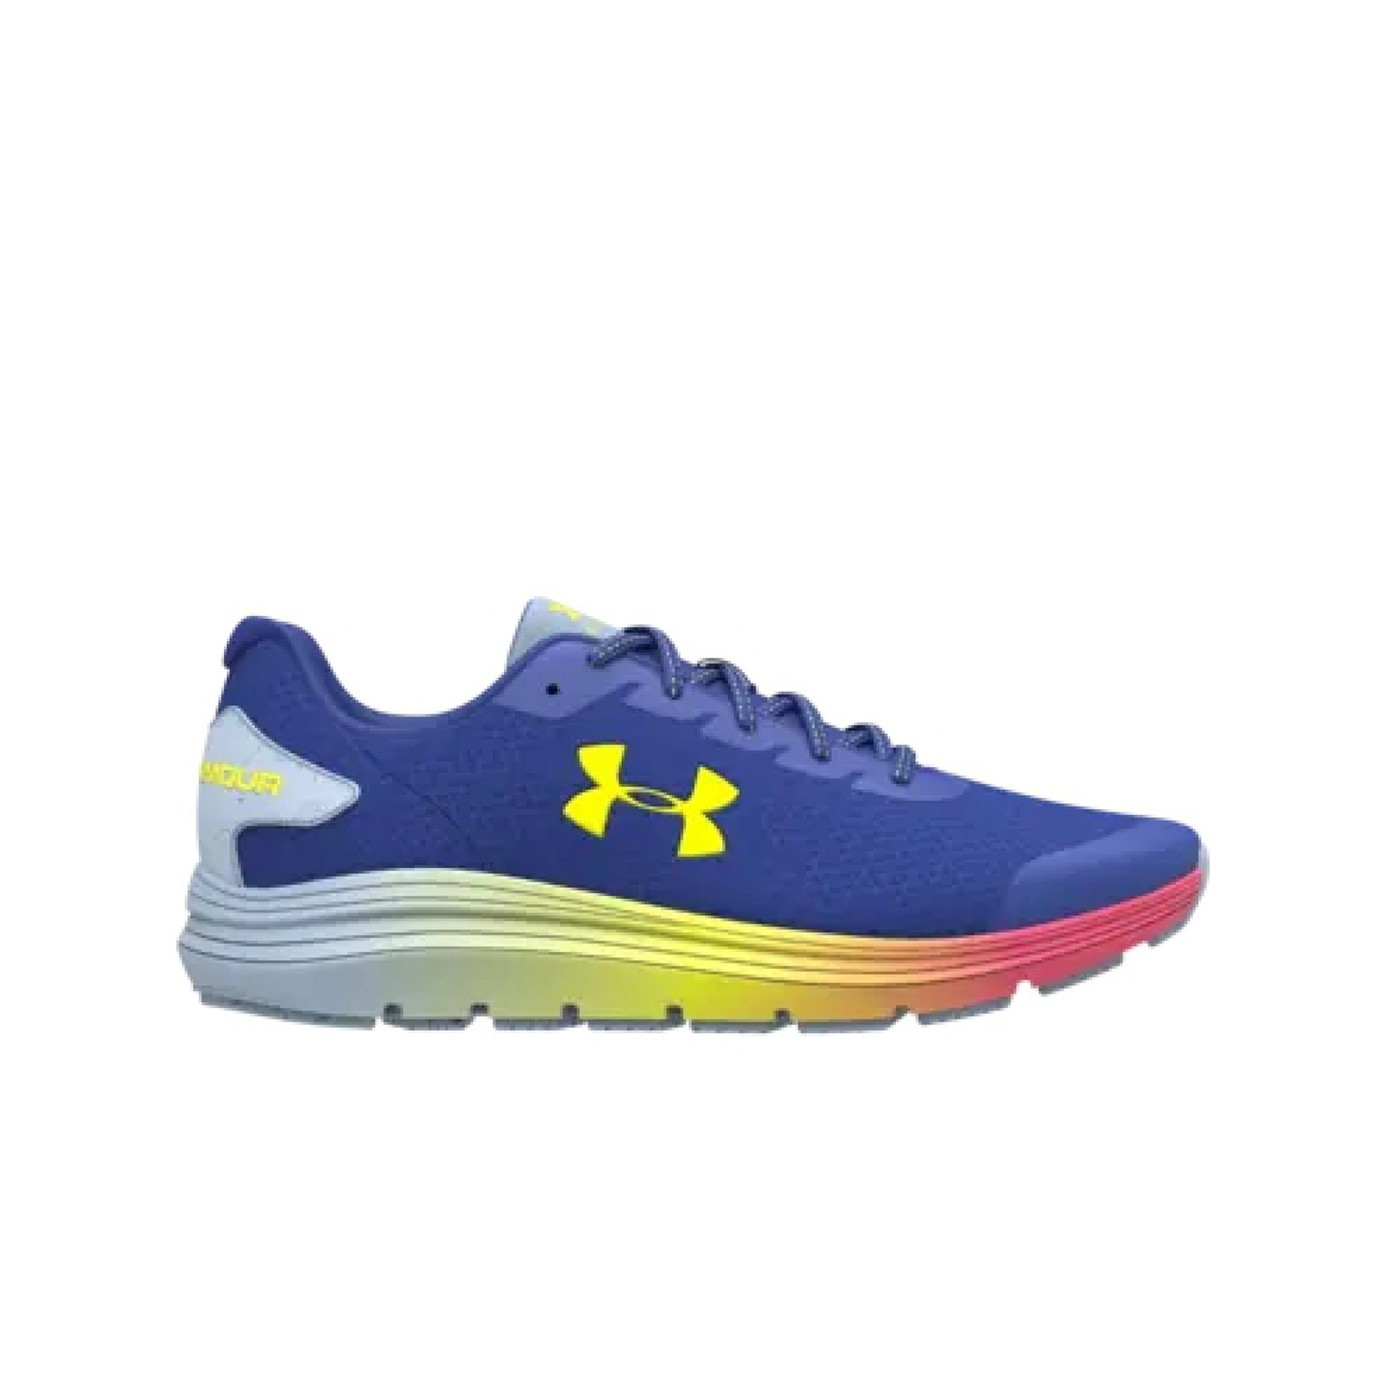 UNDER ARMOUR UA GGS Surge 2 Splash - Kinder